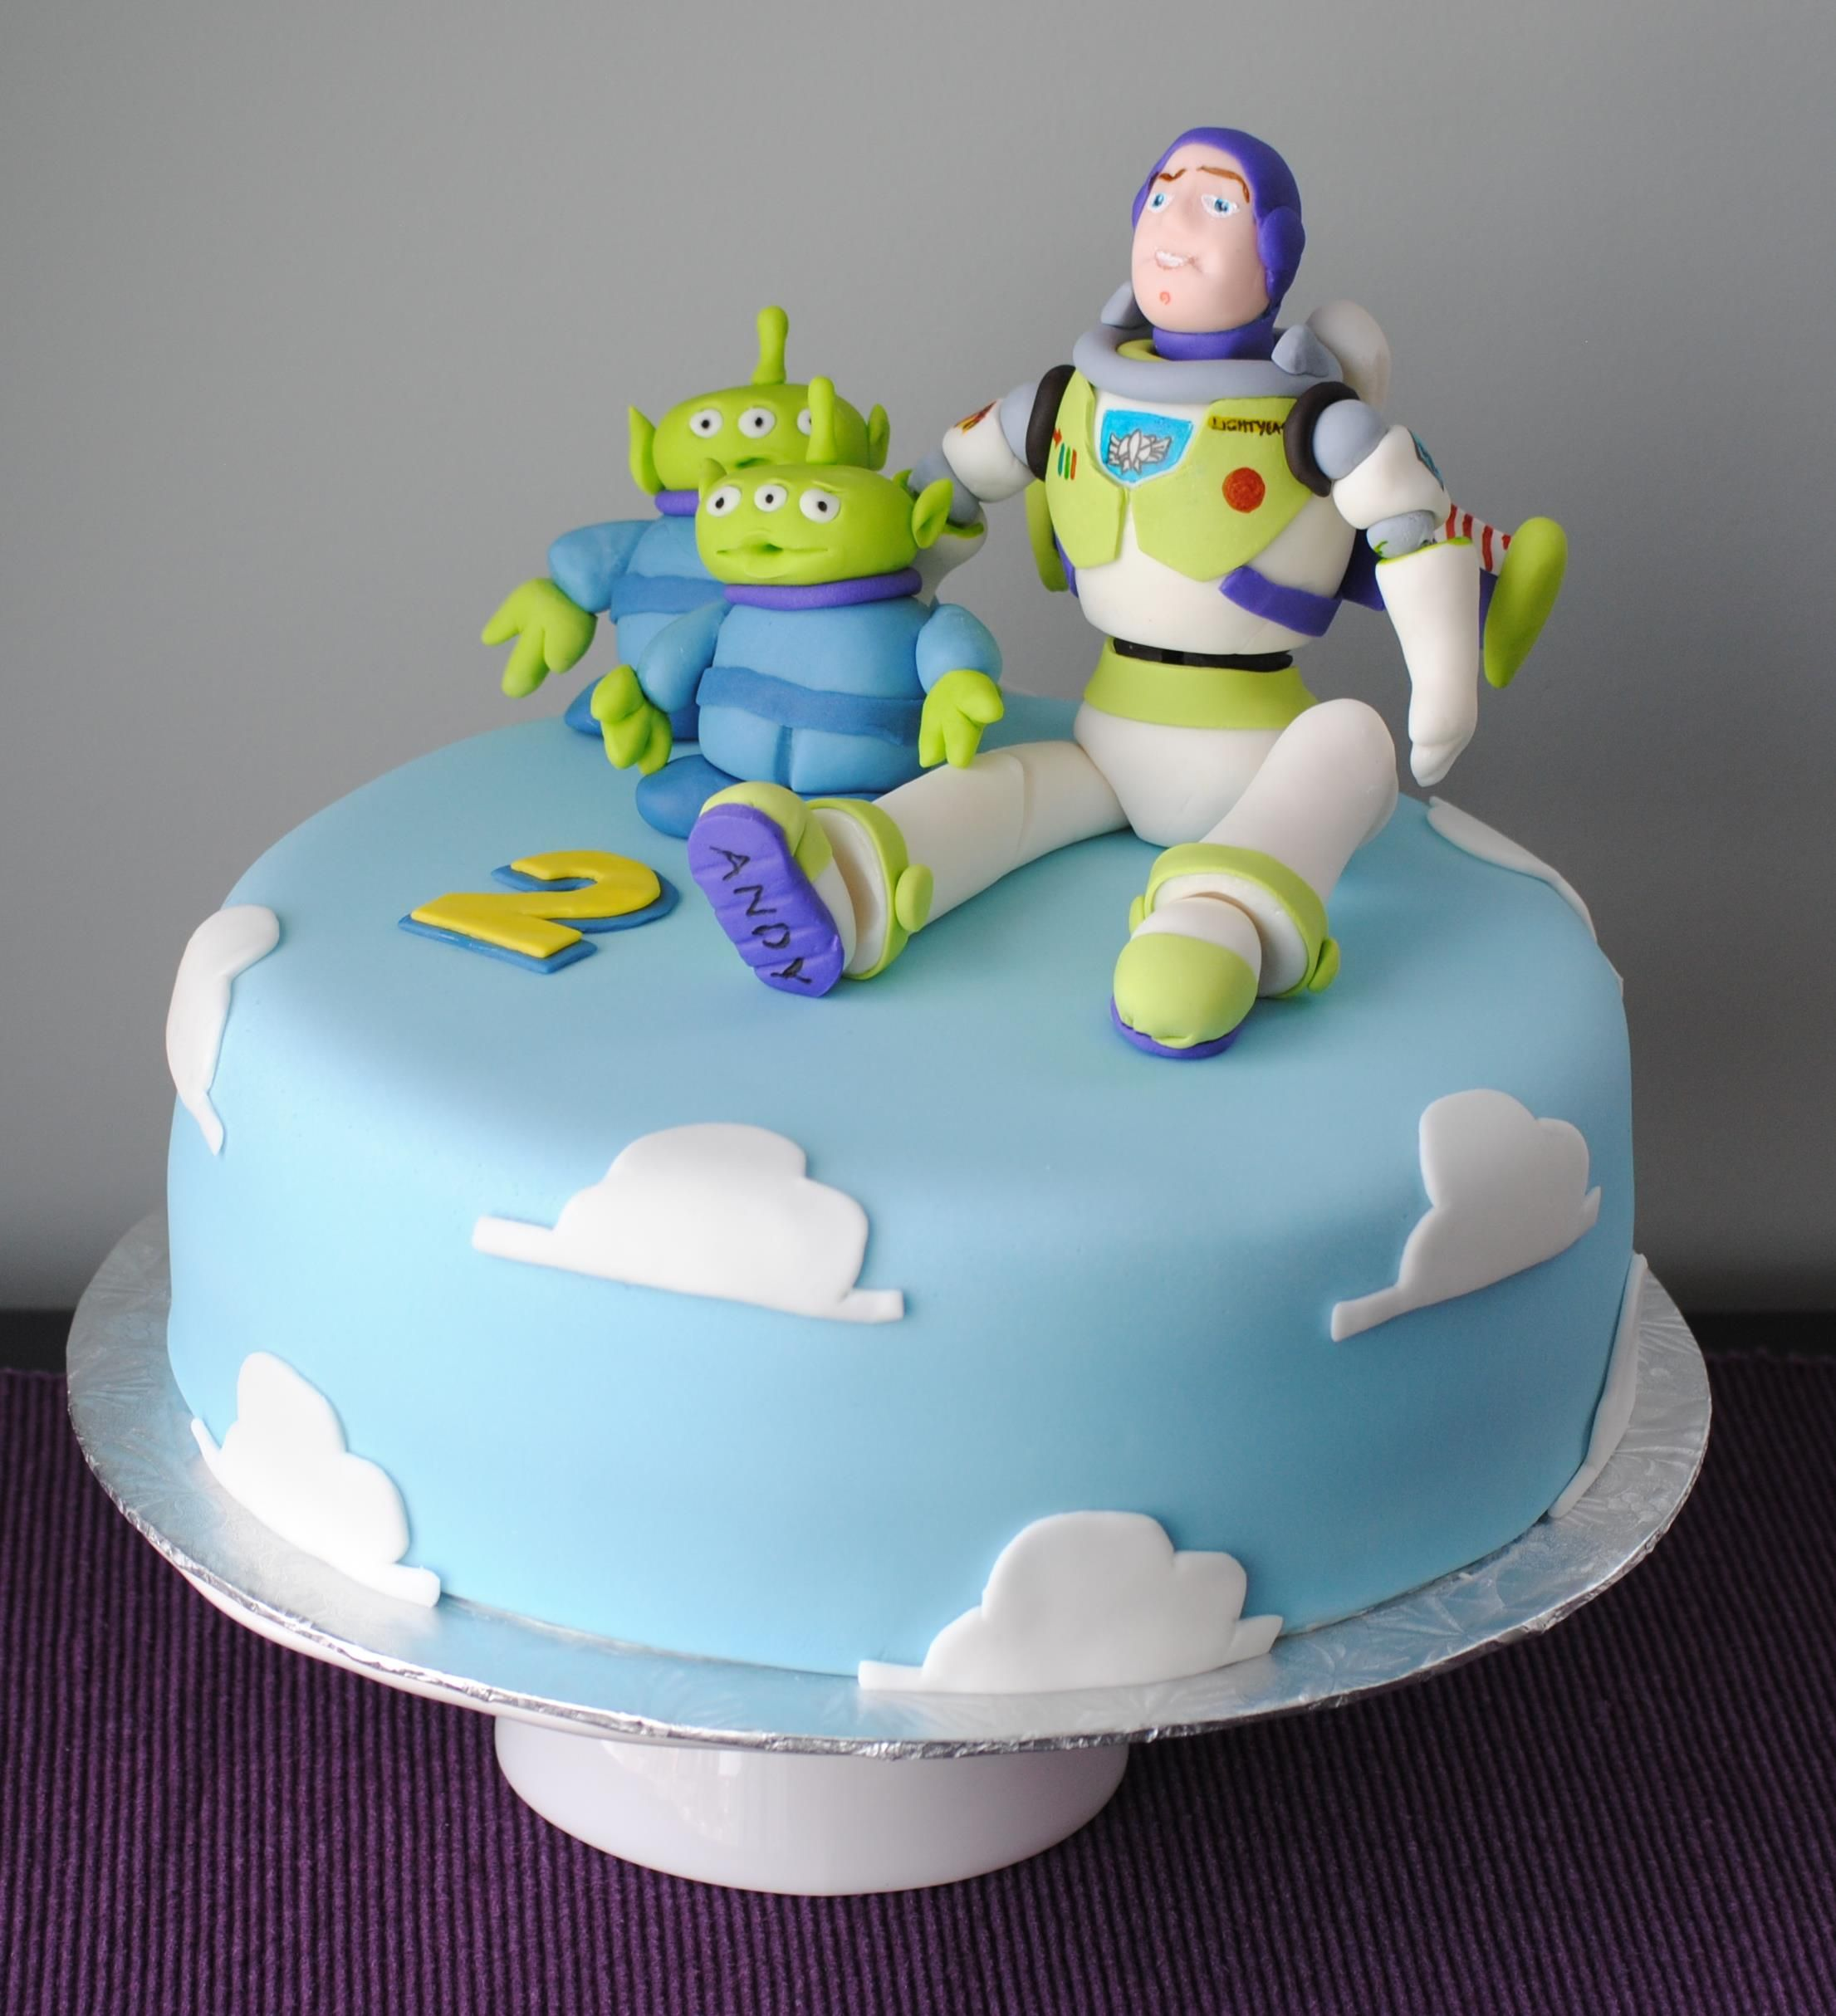 Buzz Lightyear Birthday Cake Aliens Pizza Planet Toy Story